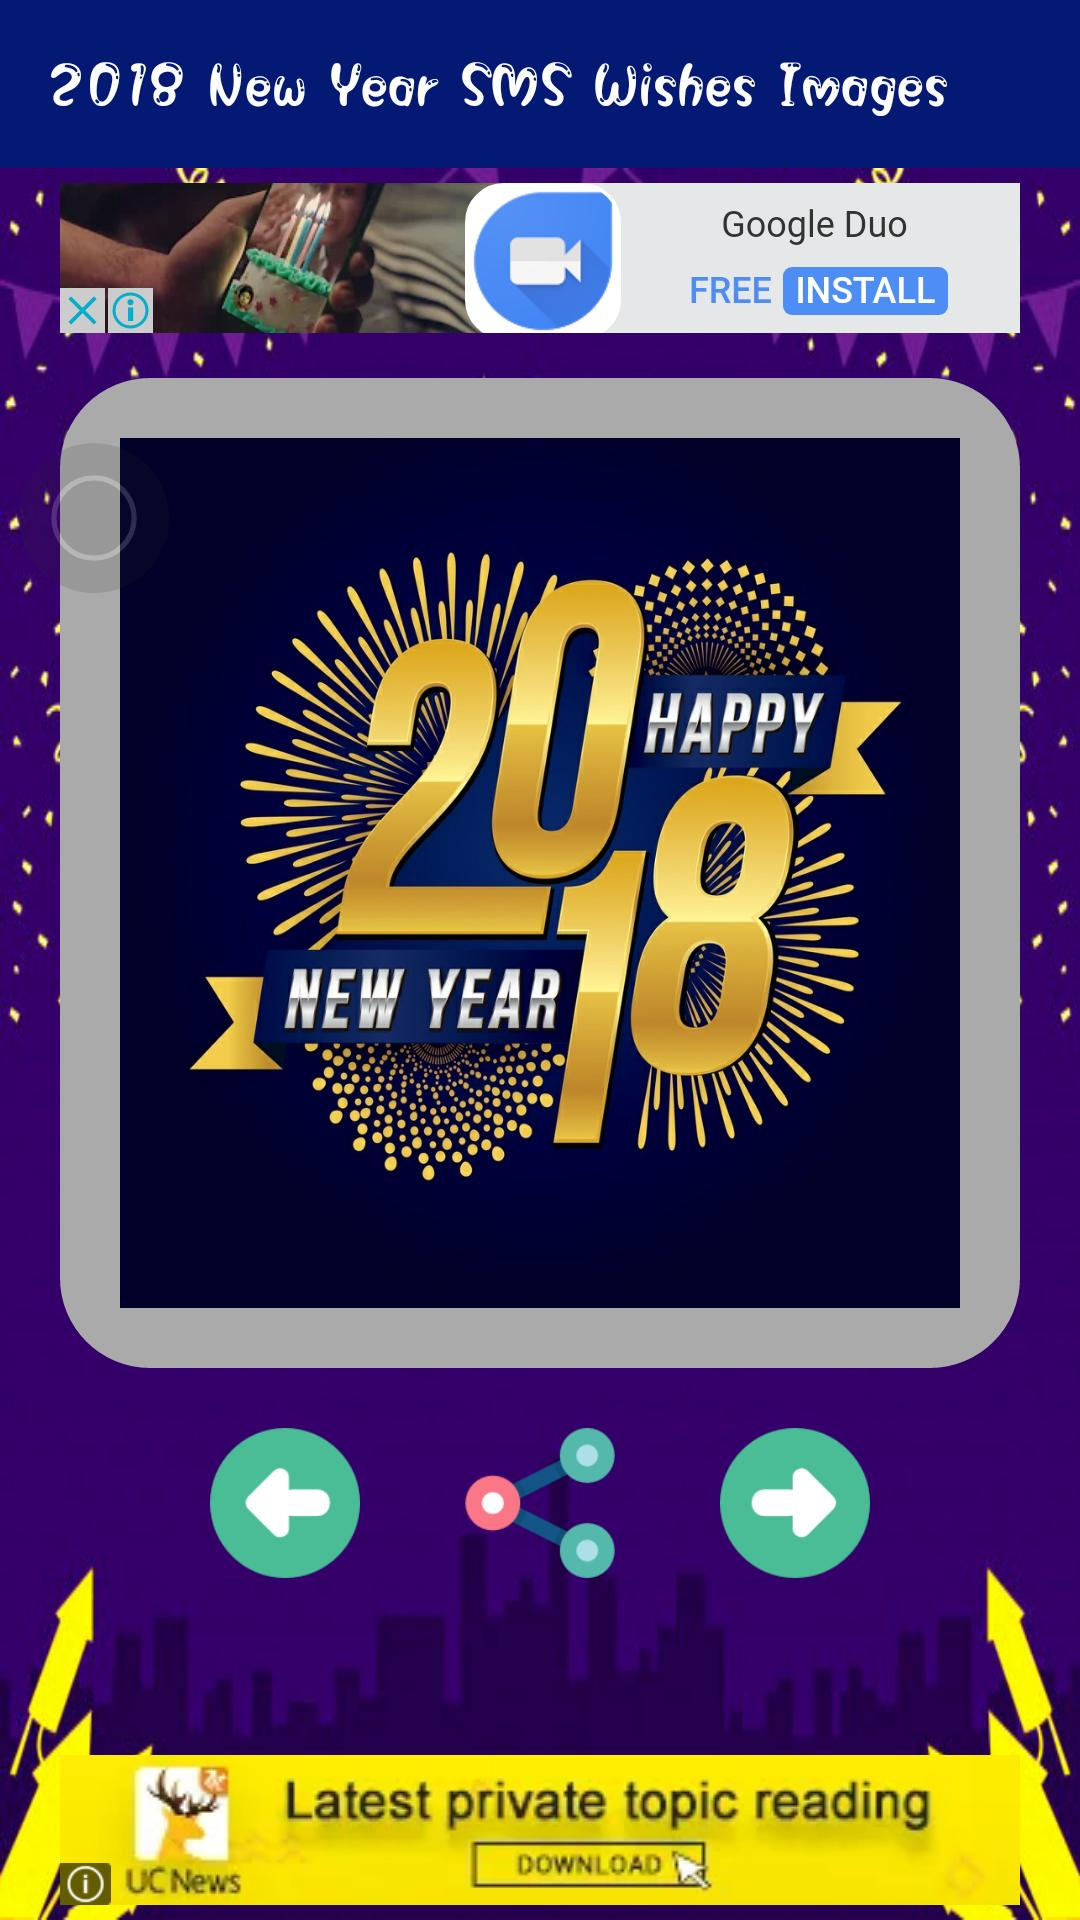 2019 New Year SMS Wishes Images for Android - APK Download